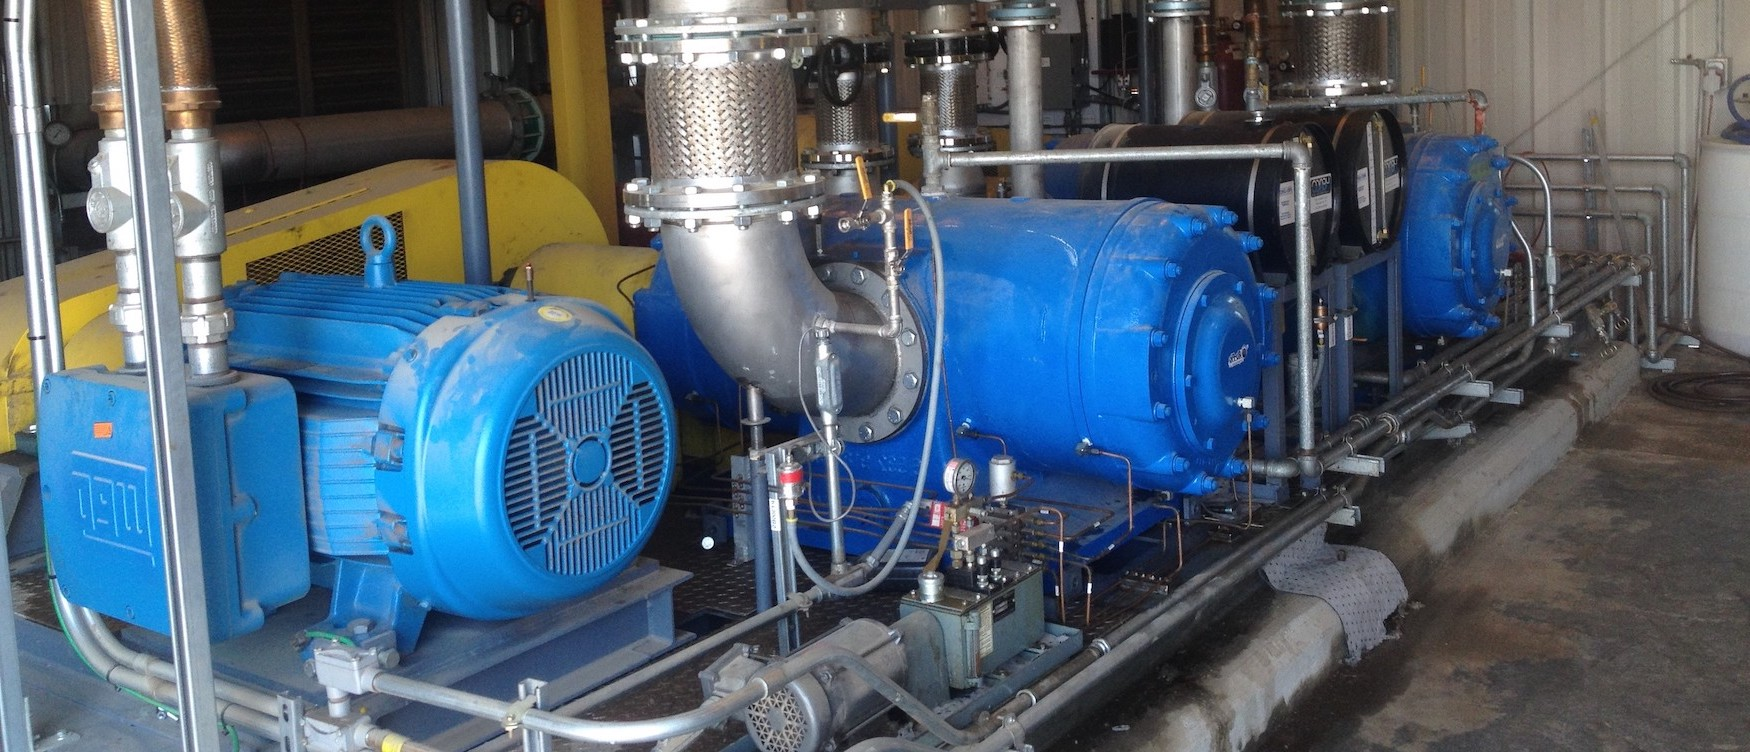 rotary sliding vane gas compressor installed in factory